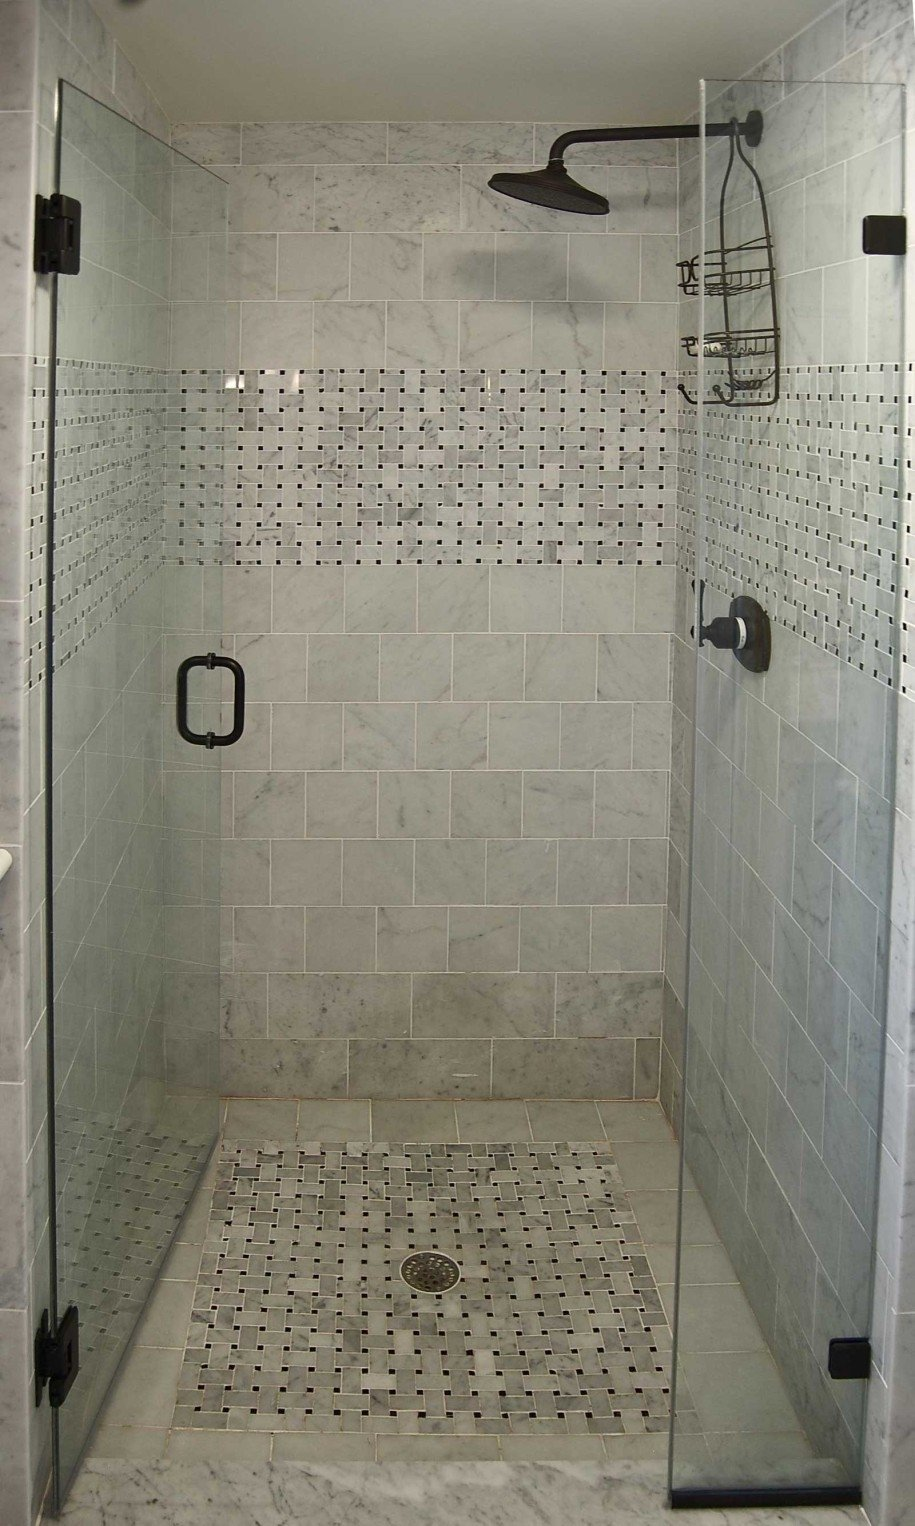 10 Great Small Bathroom Shower Tile Ideas shower design ideas small bathroom large and beautiful photos 2 2020